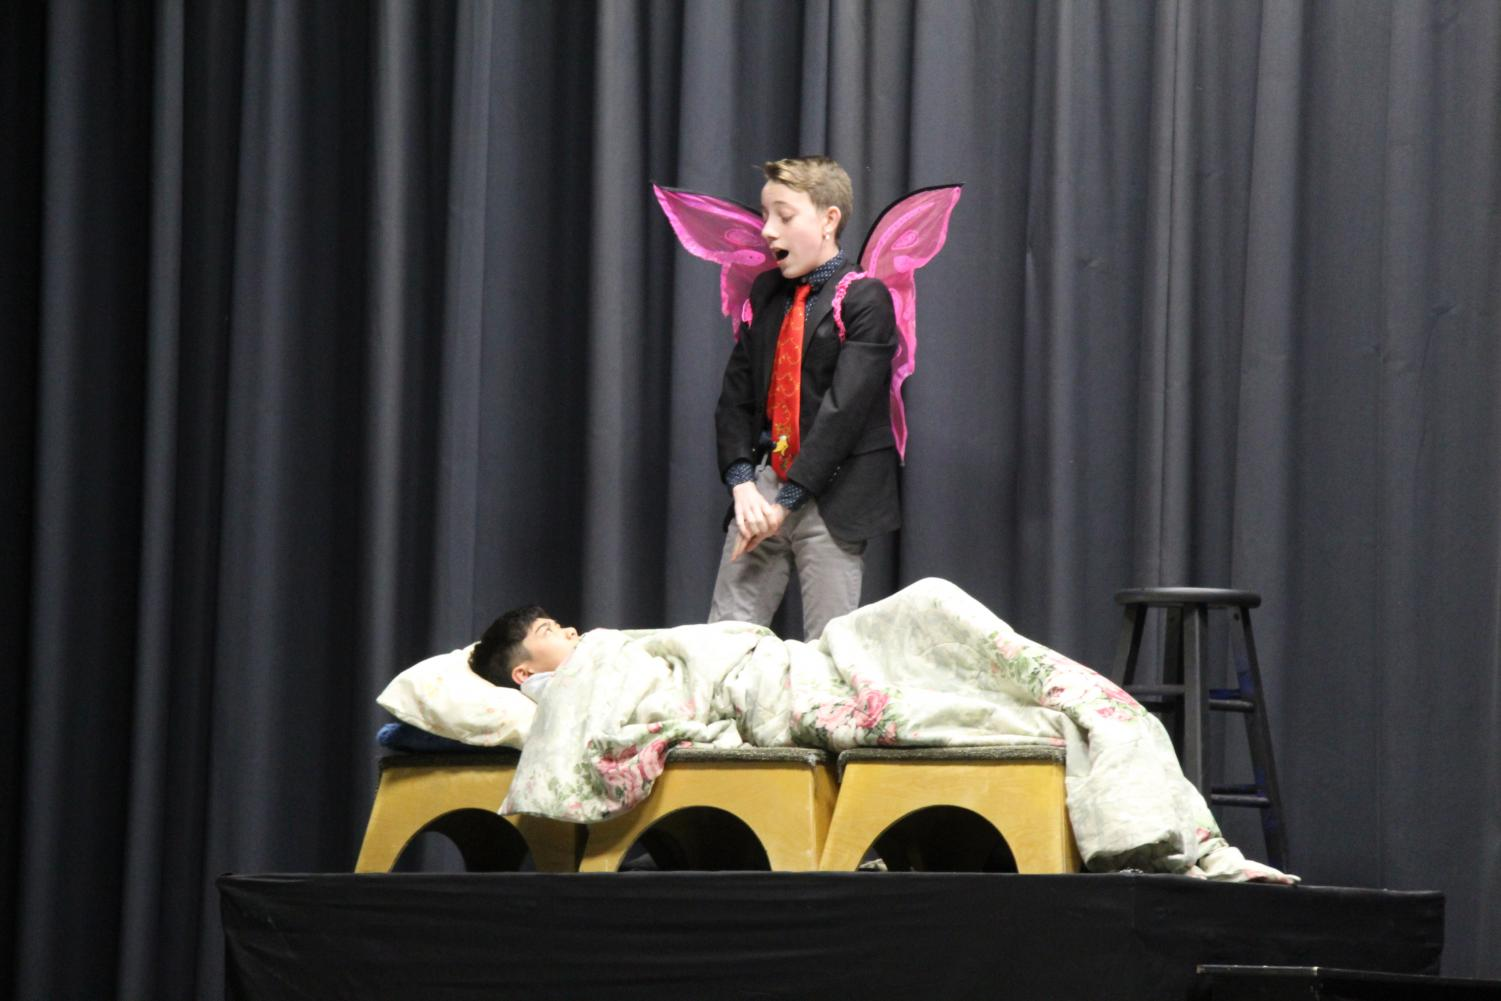 Freshmen Ivan Calderon stands over classmate Ethan Tangpornsin during the ninth grade play. Every year, the freshman drama class performs a play for the whole school